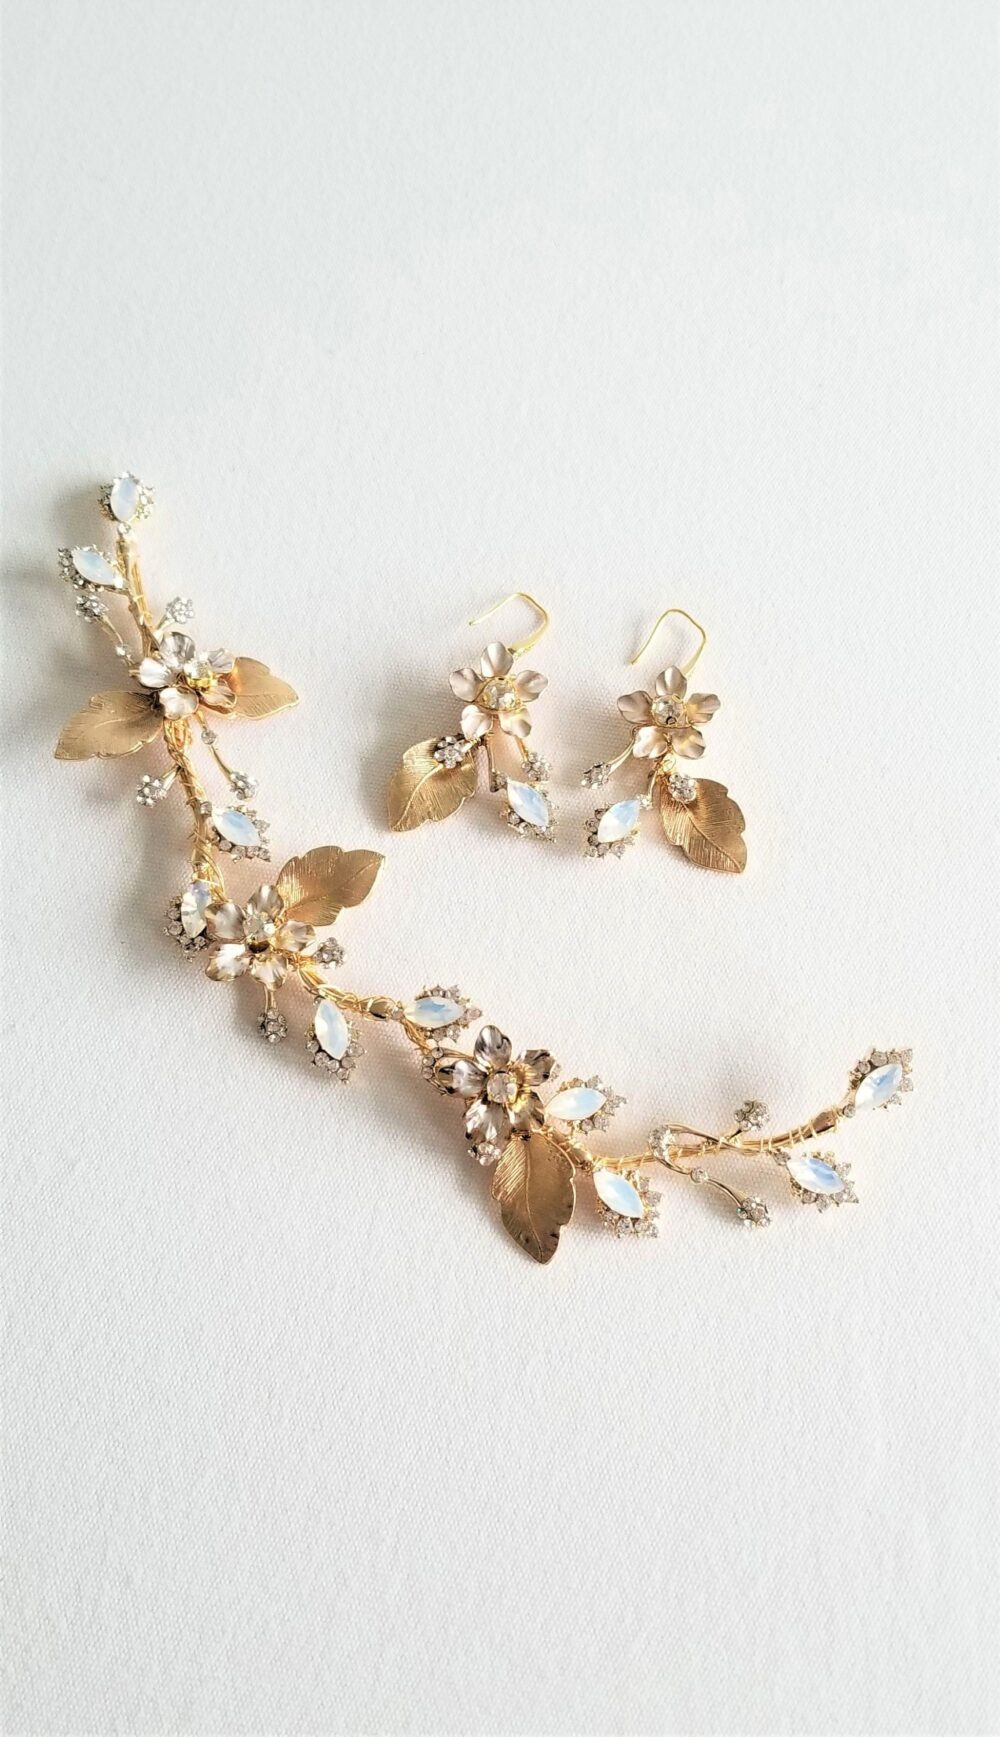 Gold Wedding Headpiece Earring Set, White Opal Crystals With Leaves, Bridal & Earrings